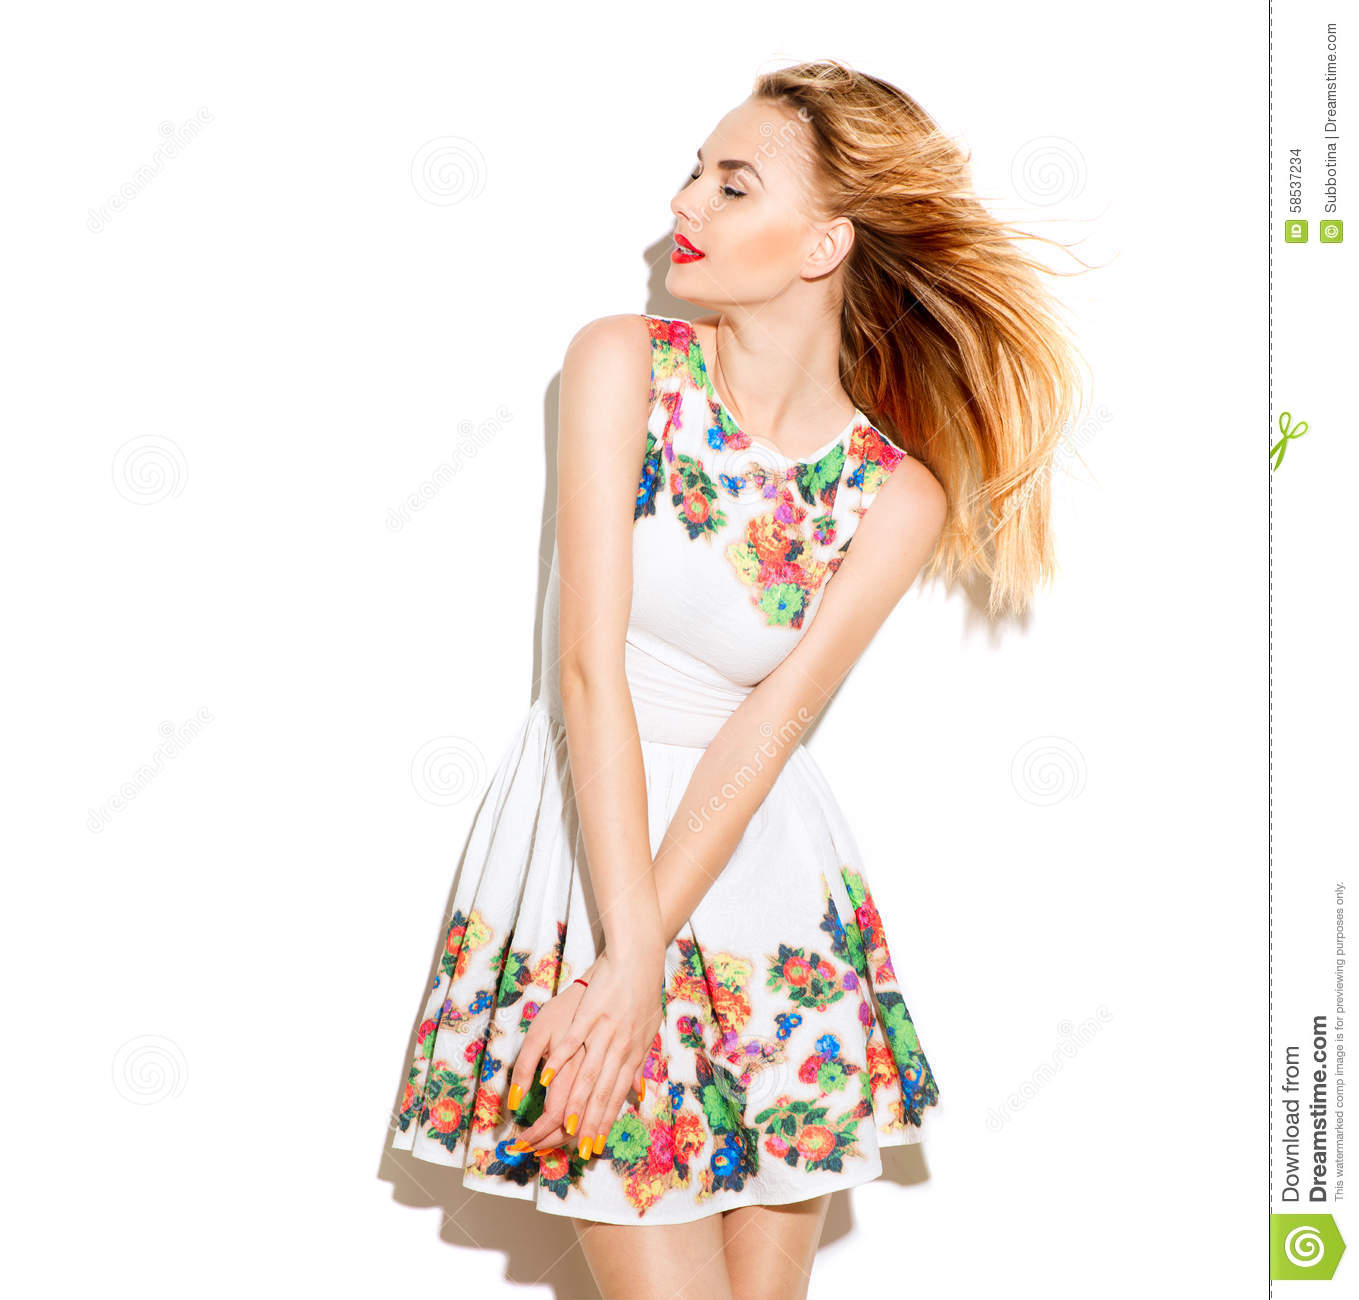 ec0a75a8753 Beautiful Girl Wearing A Summer Dress With Floral Print Stock Photo ...